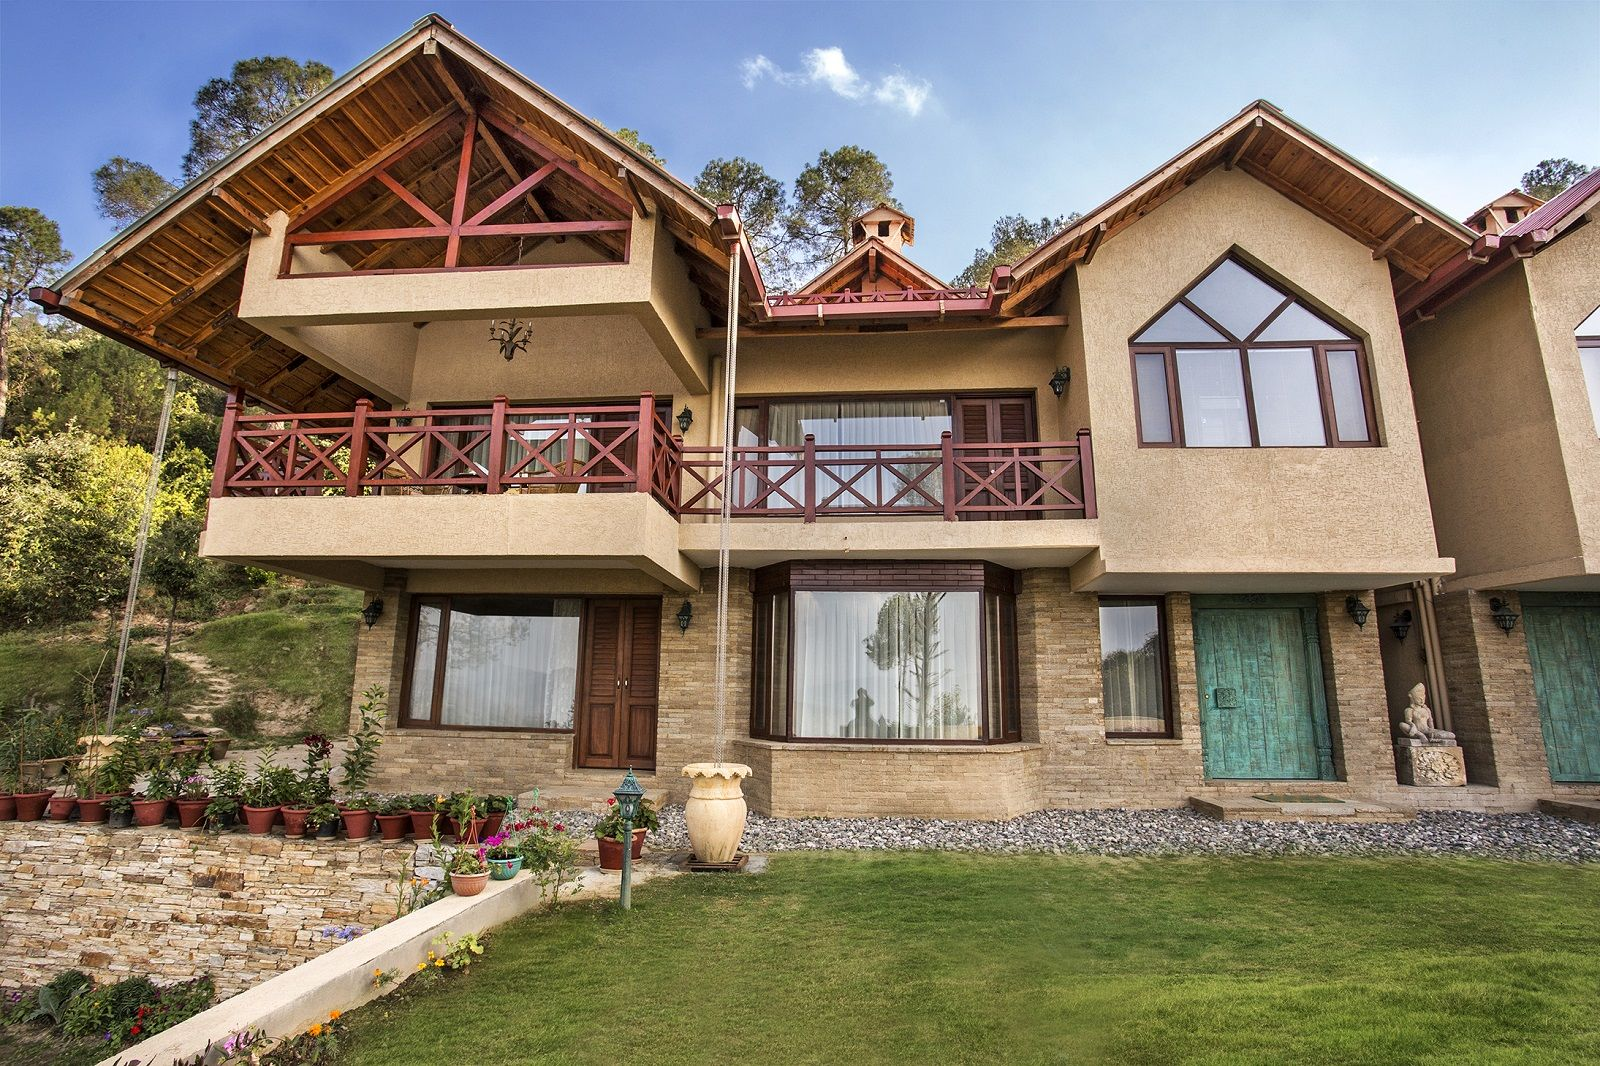 Luxury 4 bedroom cottage in Kumaon, Uttarakhand